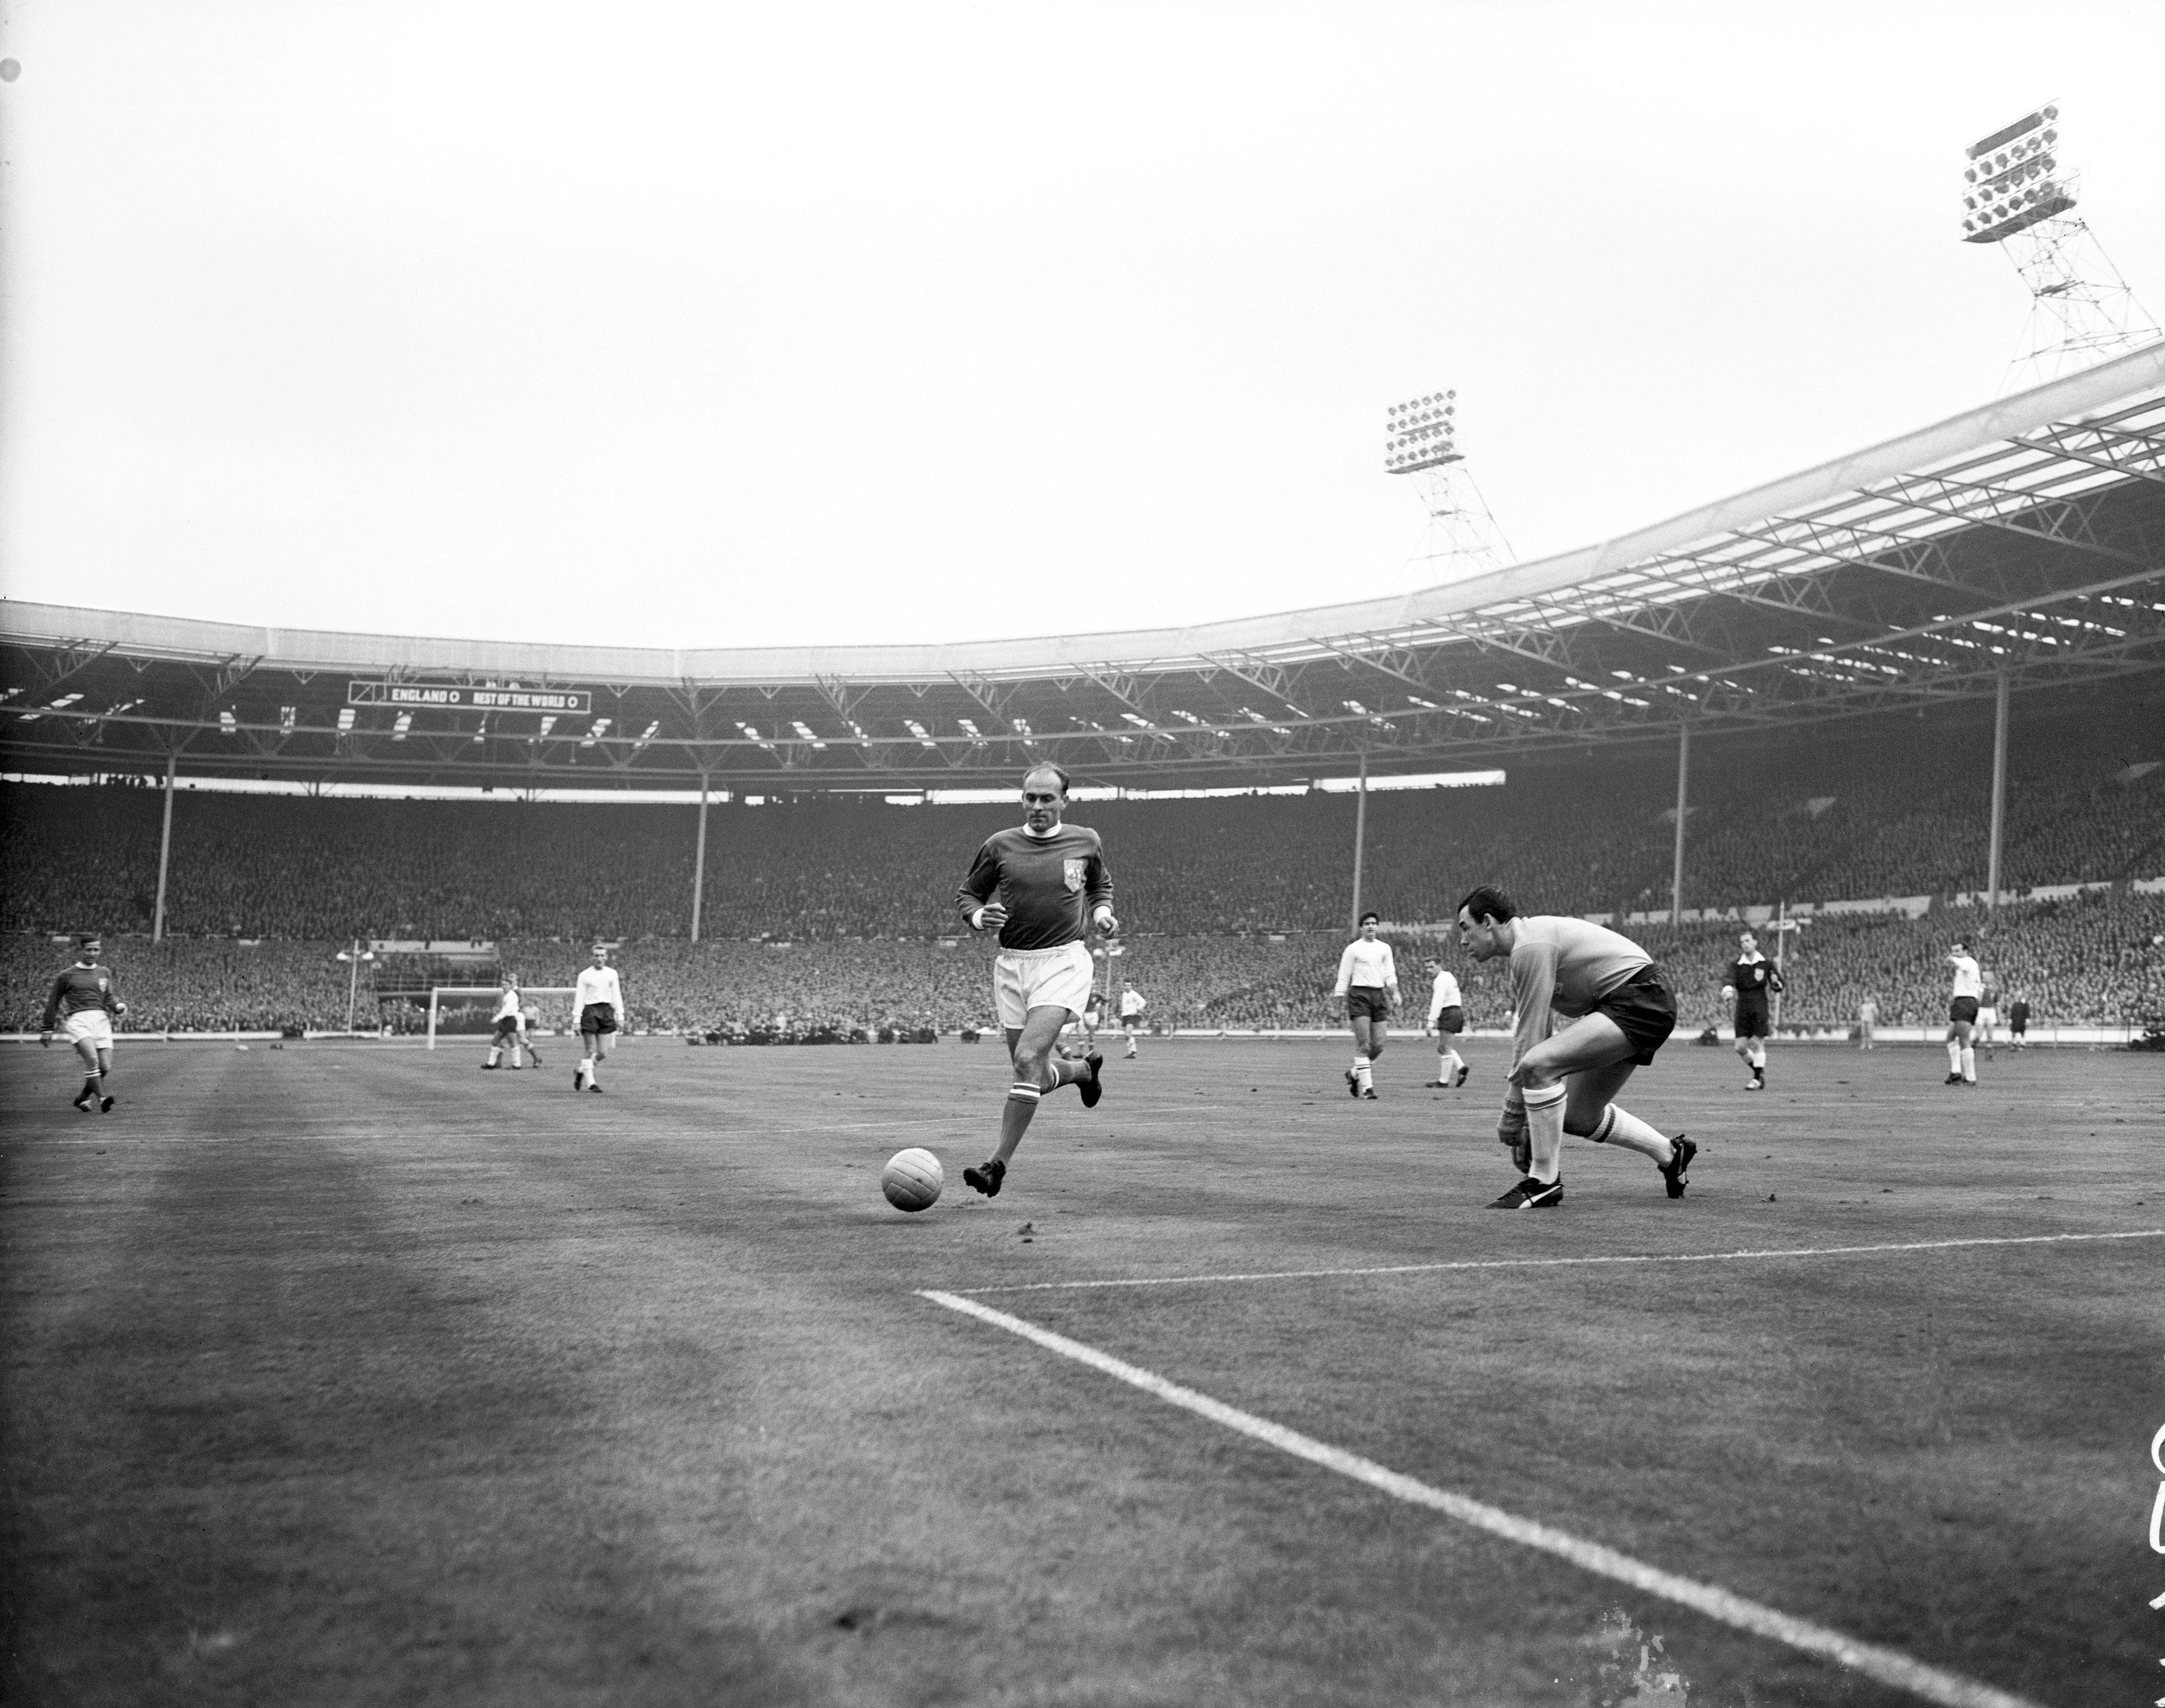 Soccer - FA 100th Anniversary Match - England v Rest of the World Rest of the World's Alfredo di Stefano (l) chases a through ball as England goalkeeper Gordon Banks (r) comes out to meet him  Date: 23/10/1963